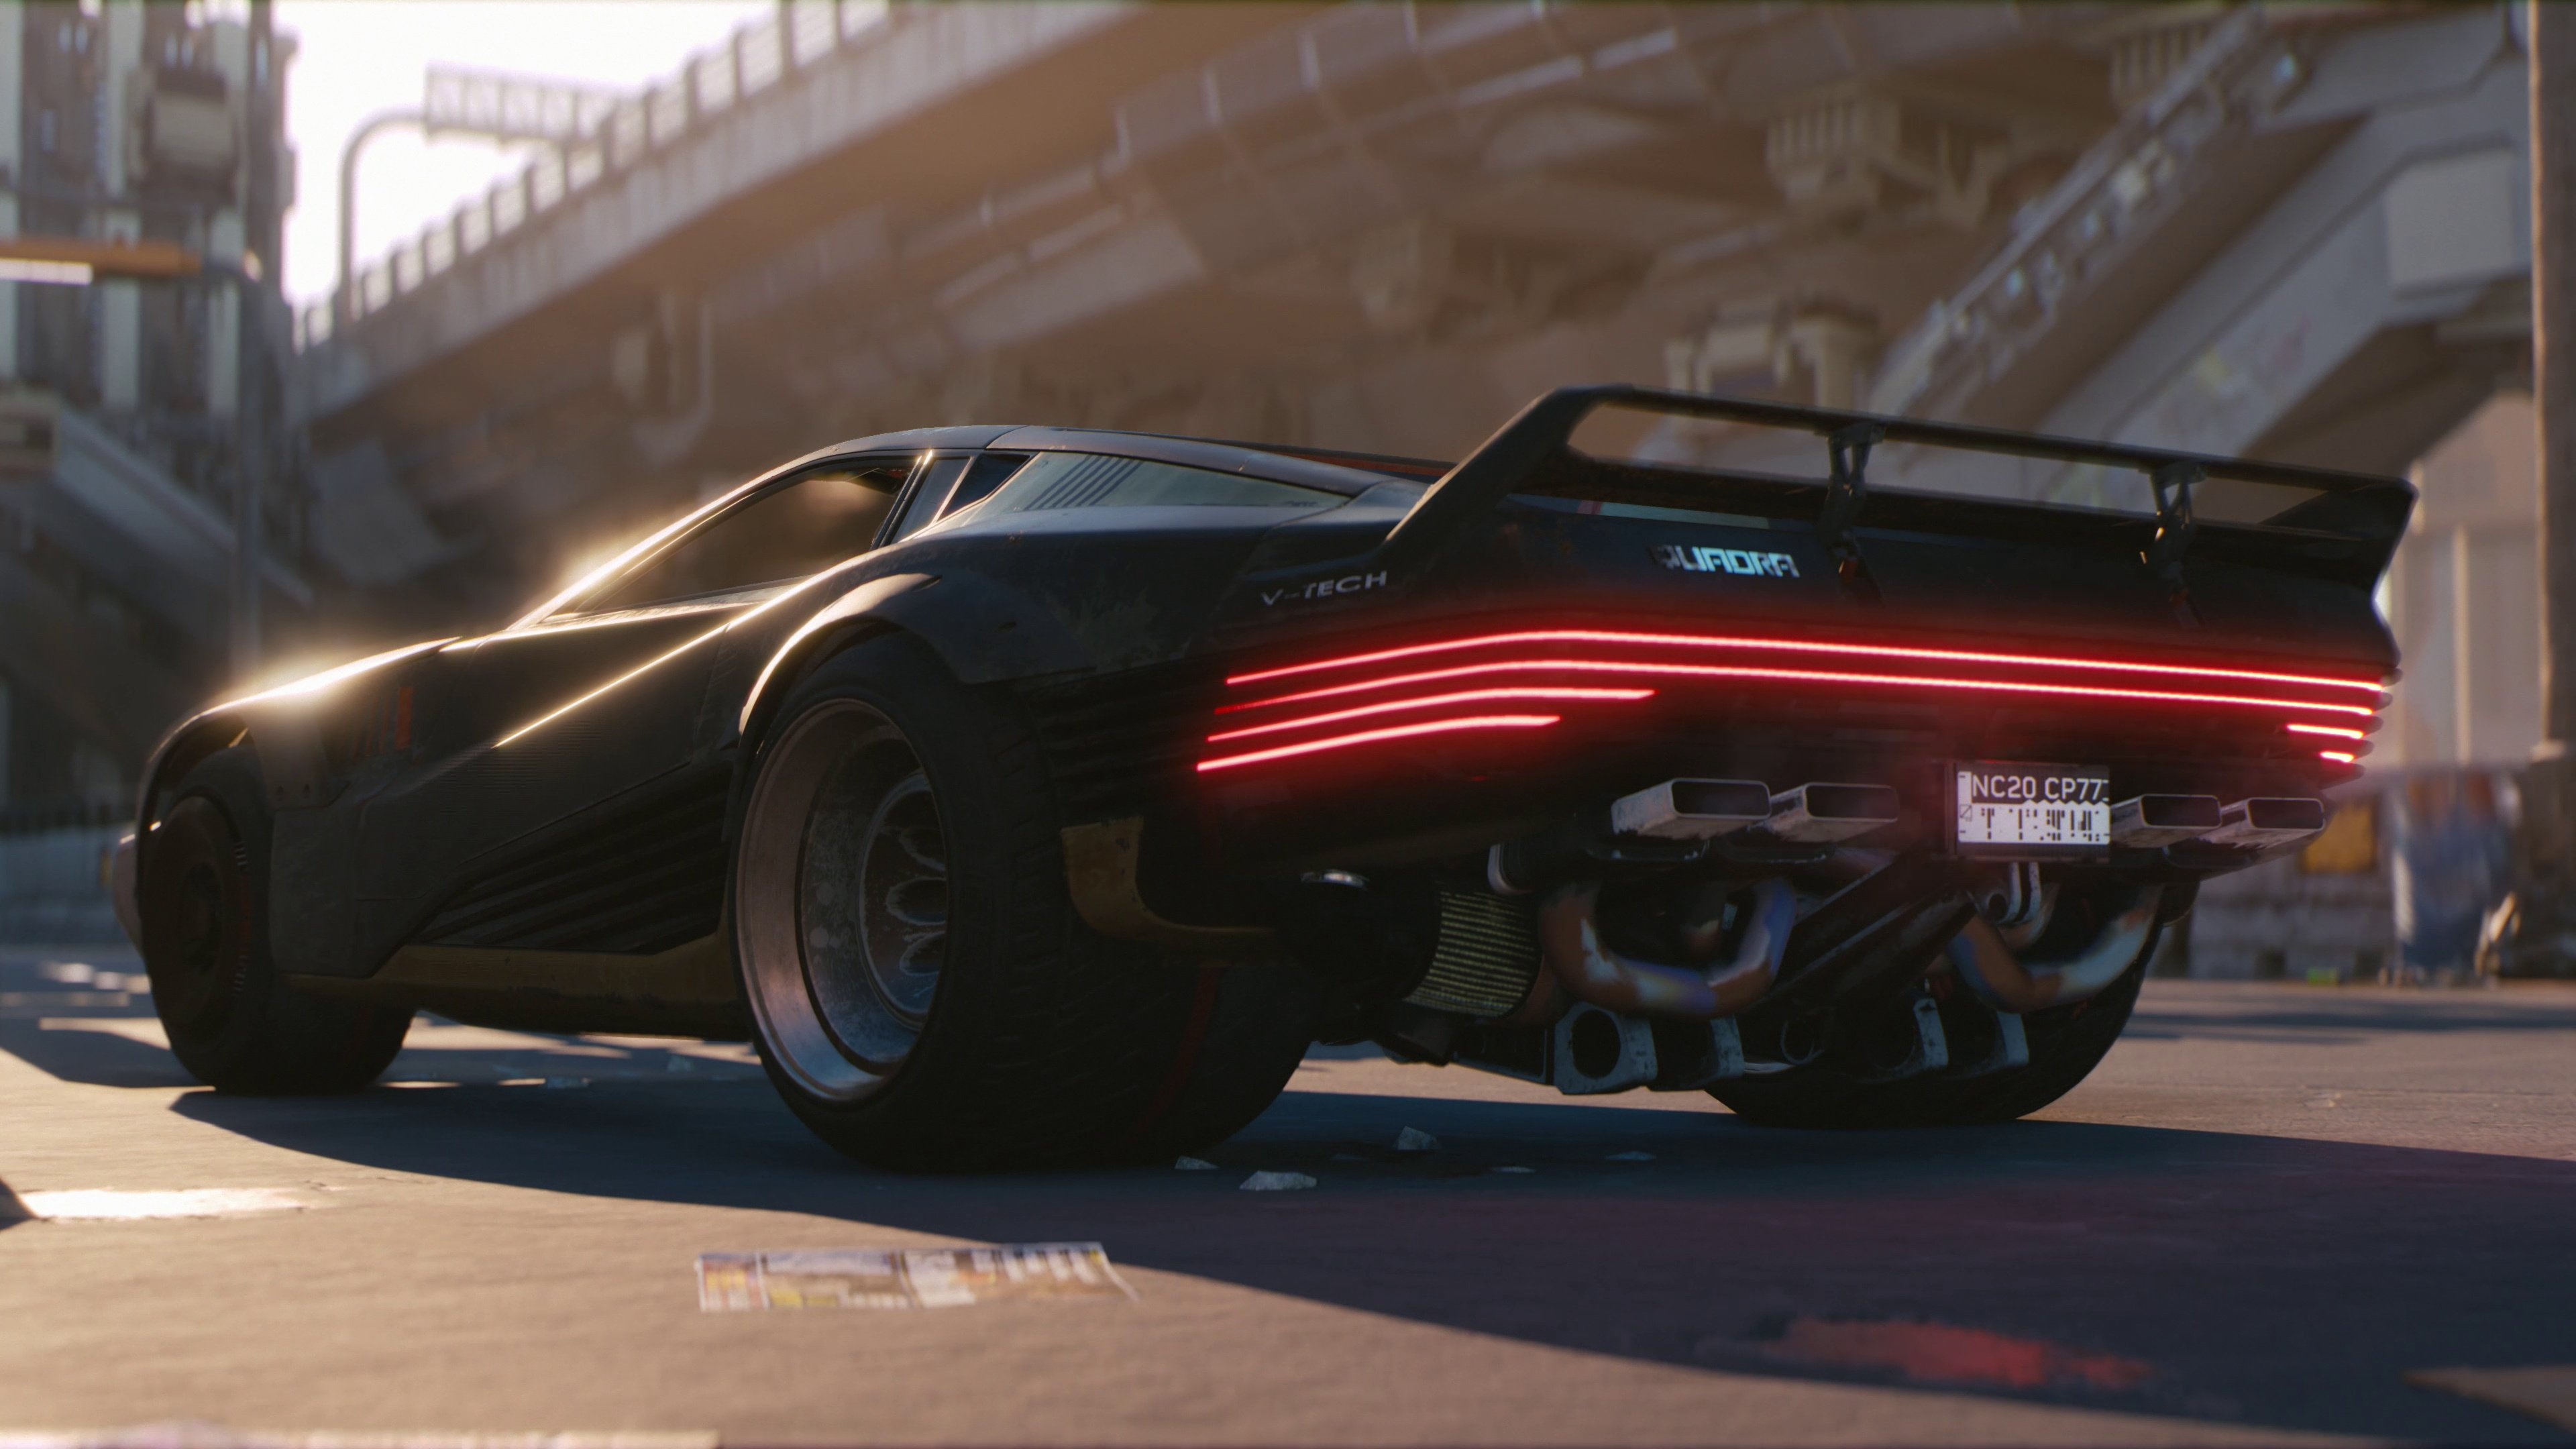 Cyberpunk 2077 Cars and Motorcycles All Have Radios So You Can Rock Out in Night City